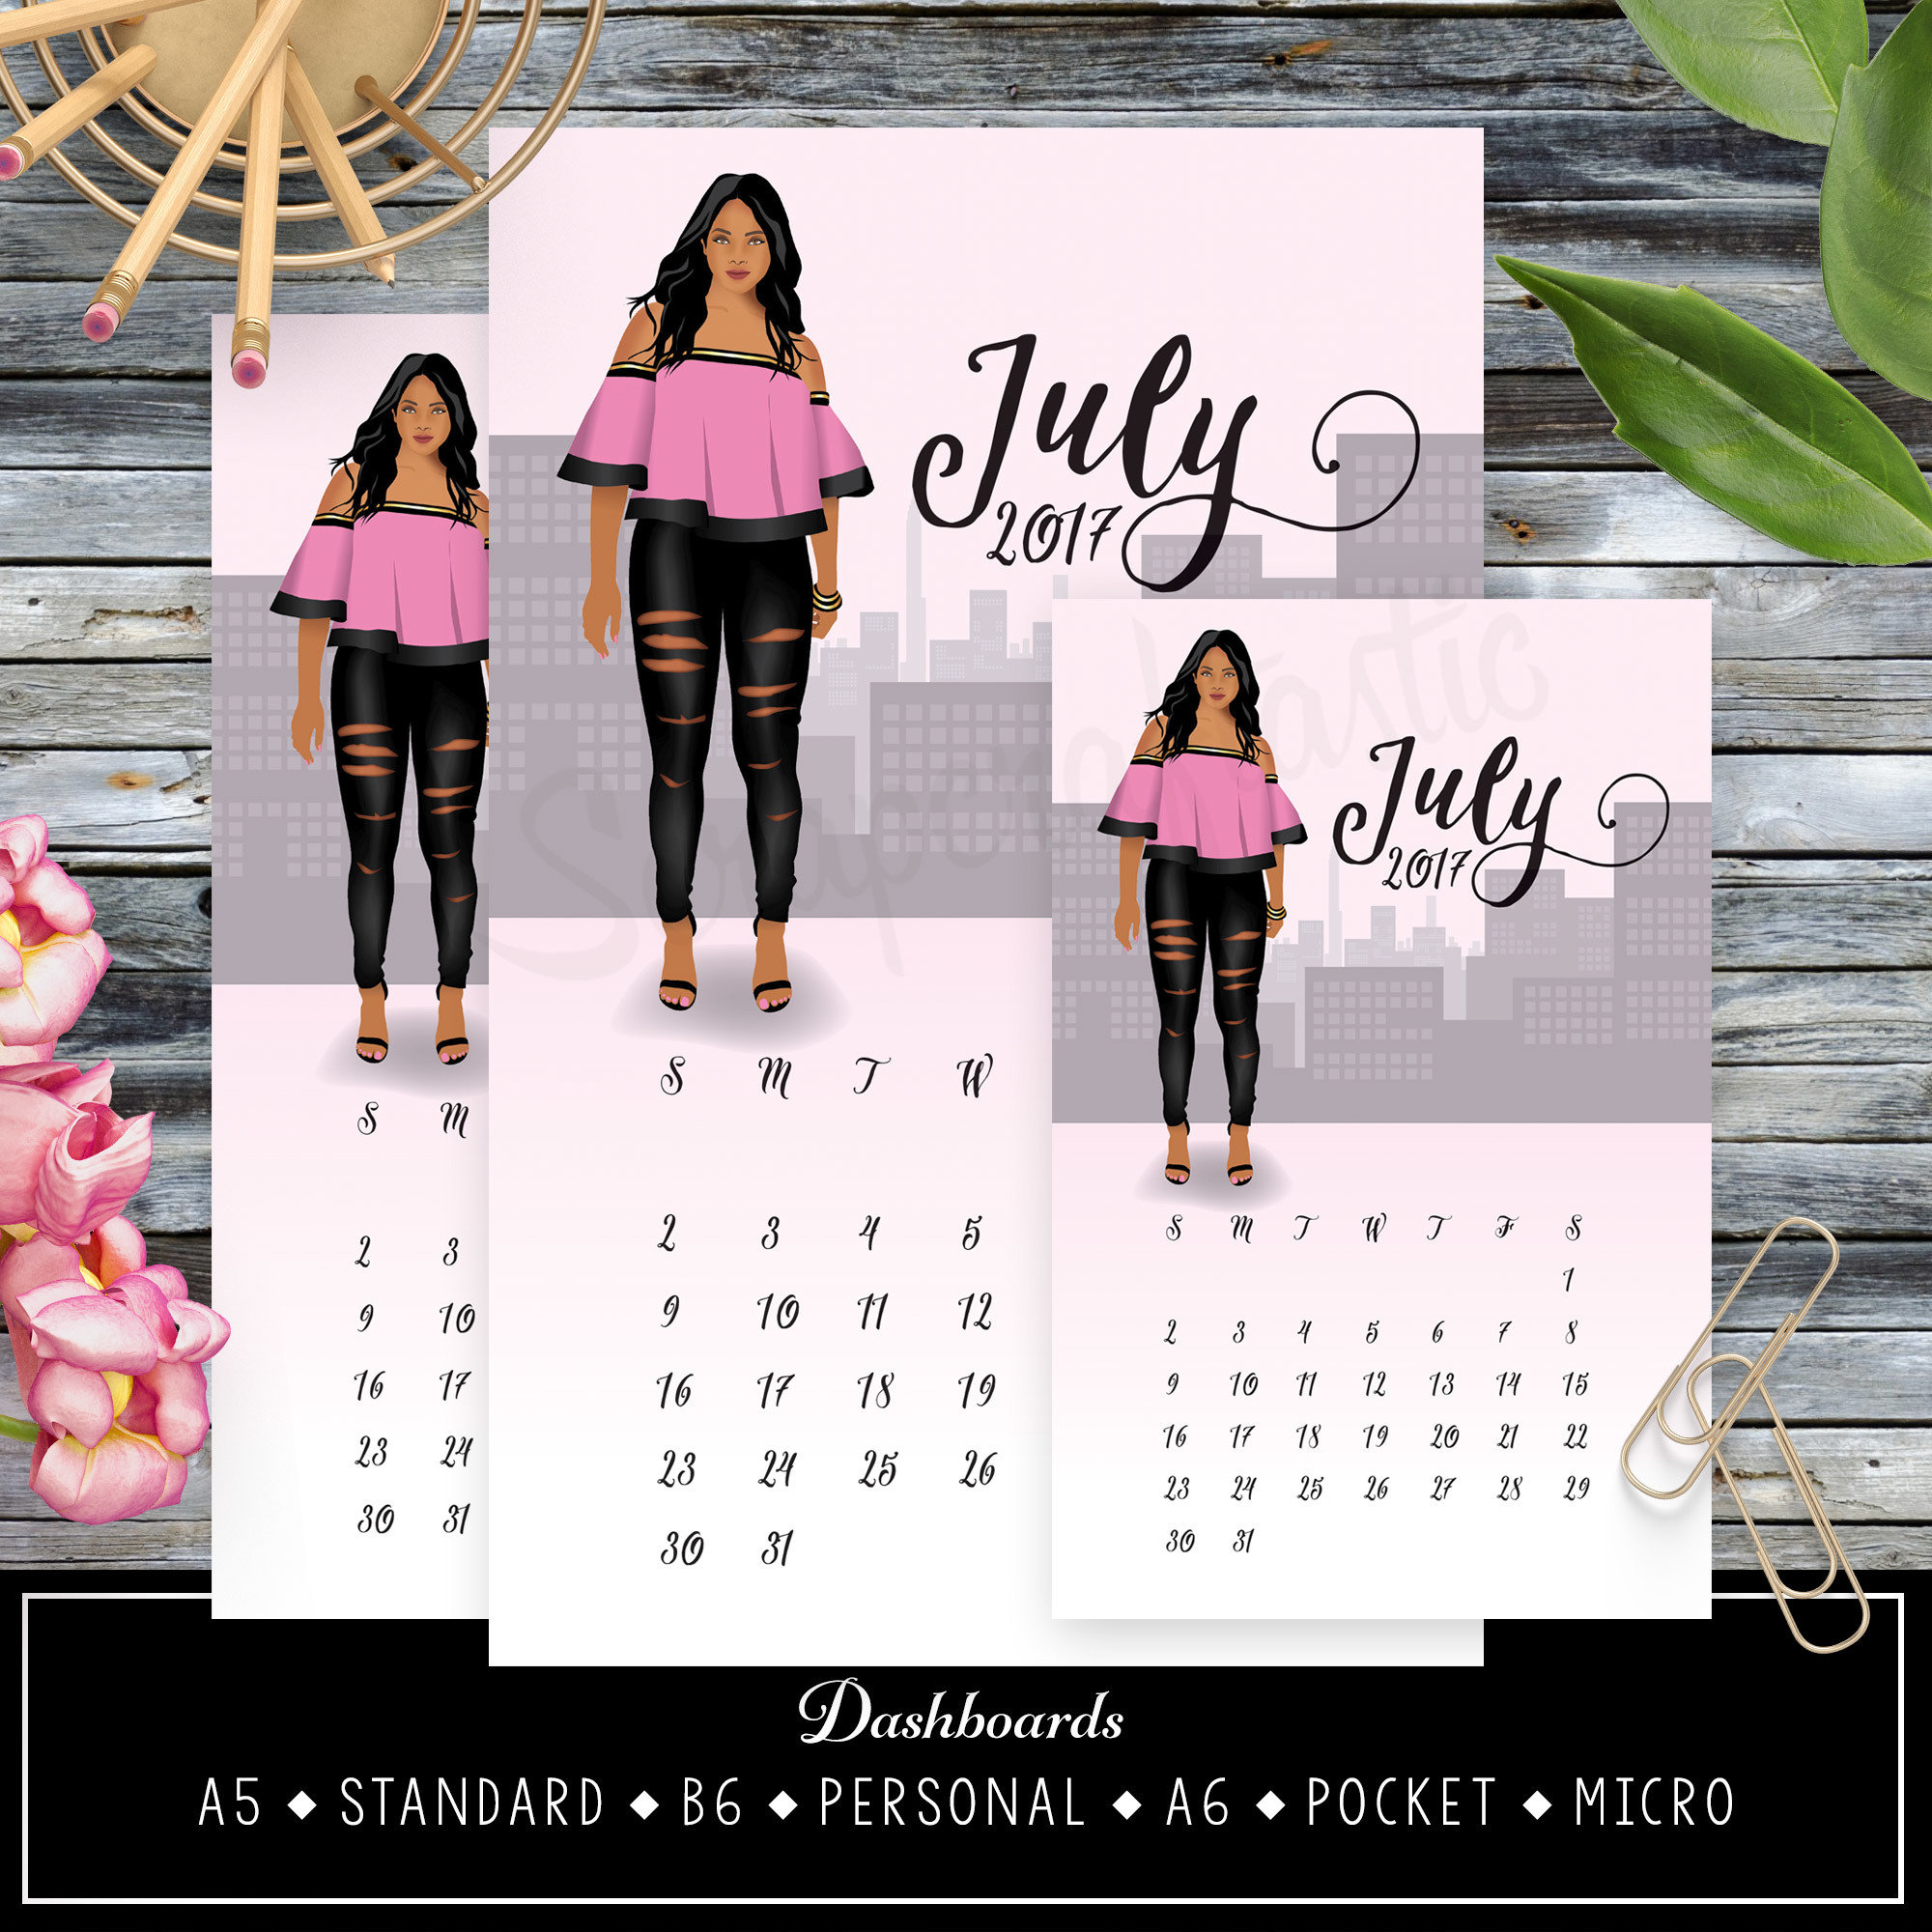 July 2017 Printable Dashboards featuring June Rose 90005